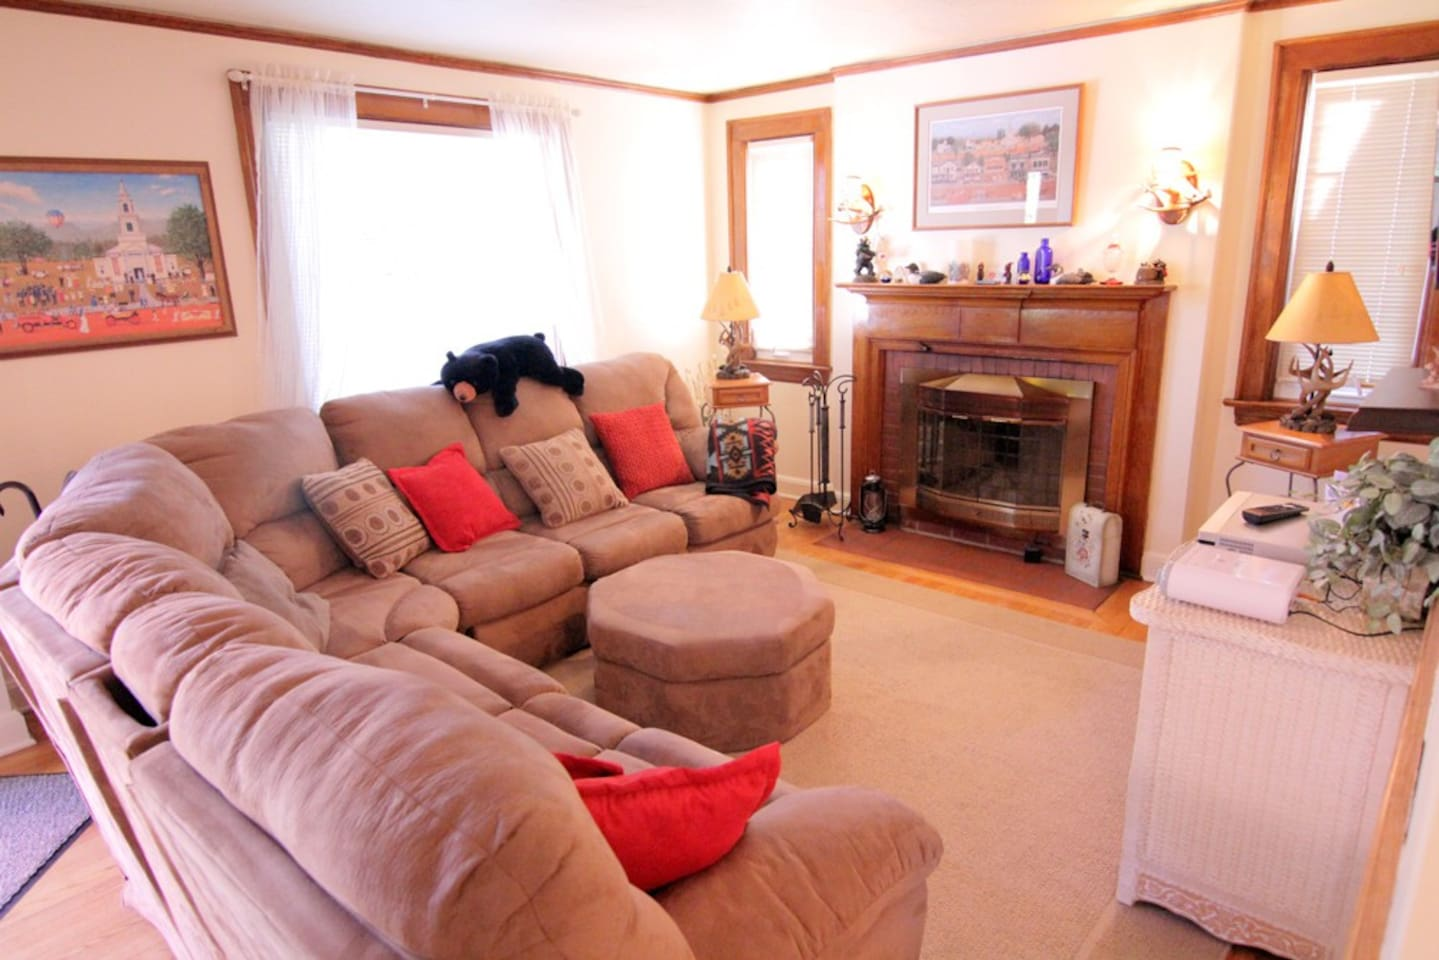 Beautiful large wrap-around sofa with Cherry fireplace with electric fire logs Large flat panel TV and steps away from the outside HOT TUB. Only a few minutes away from the ski slope & town!